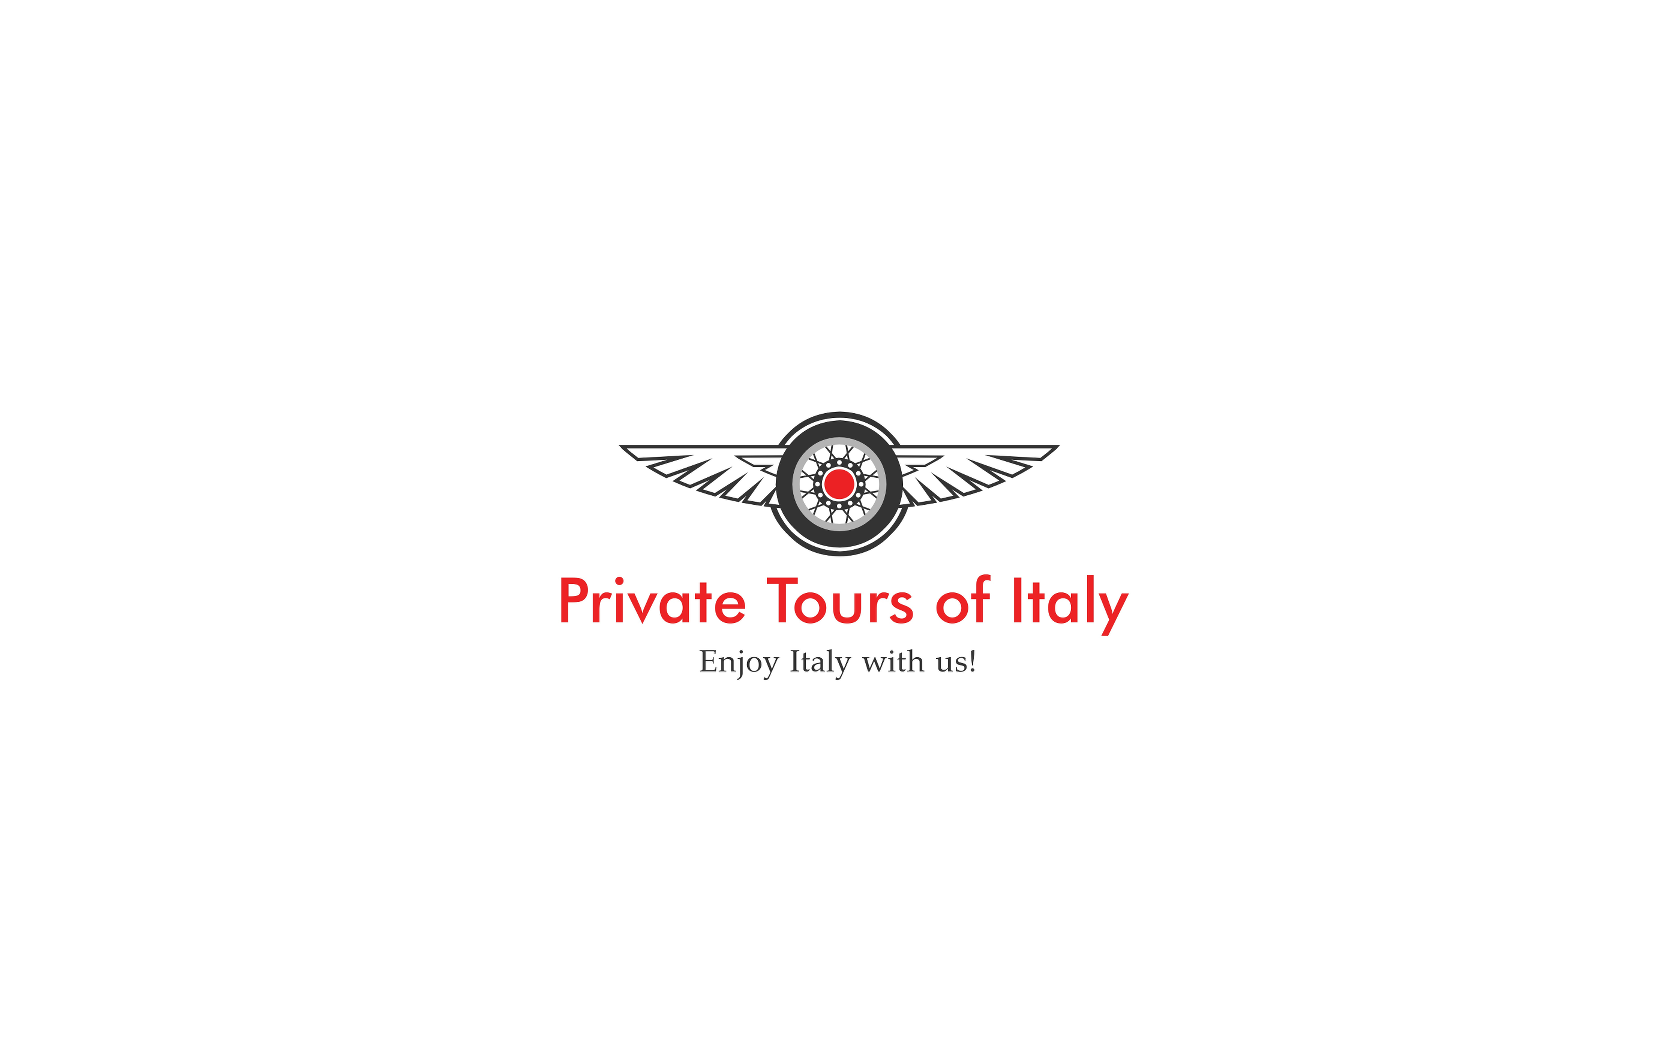 logo private tour of italy